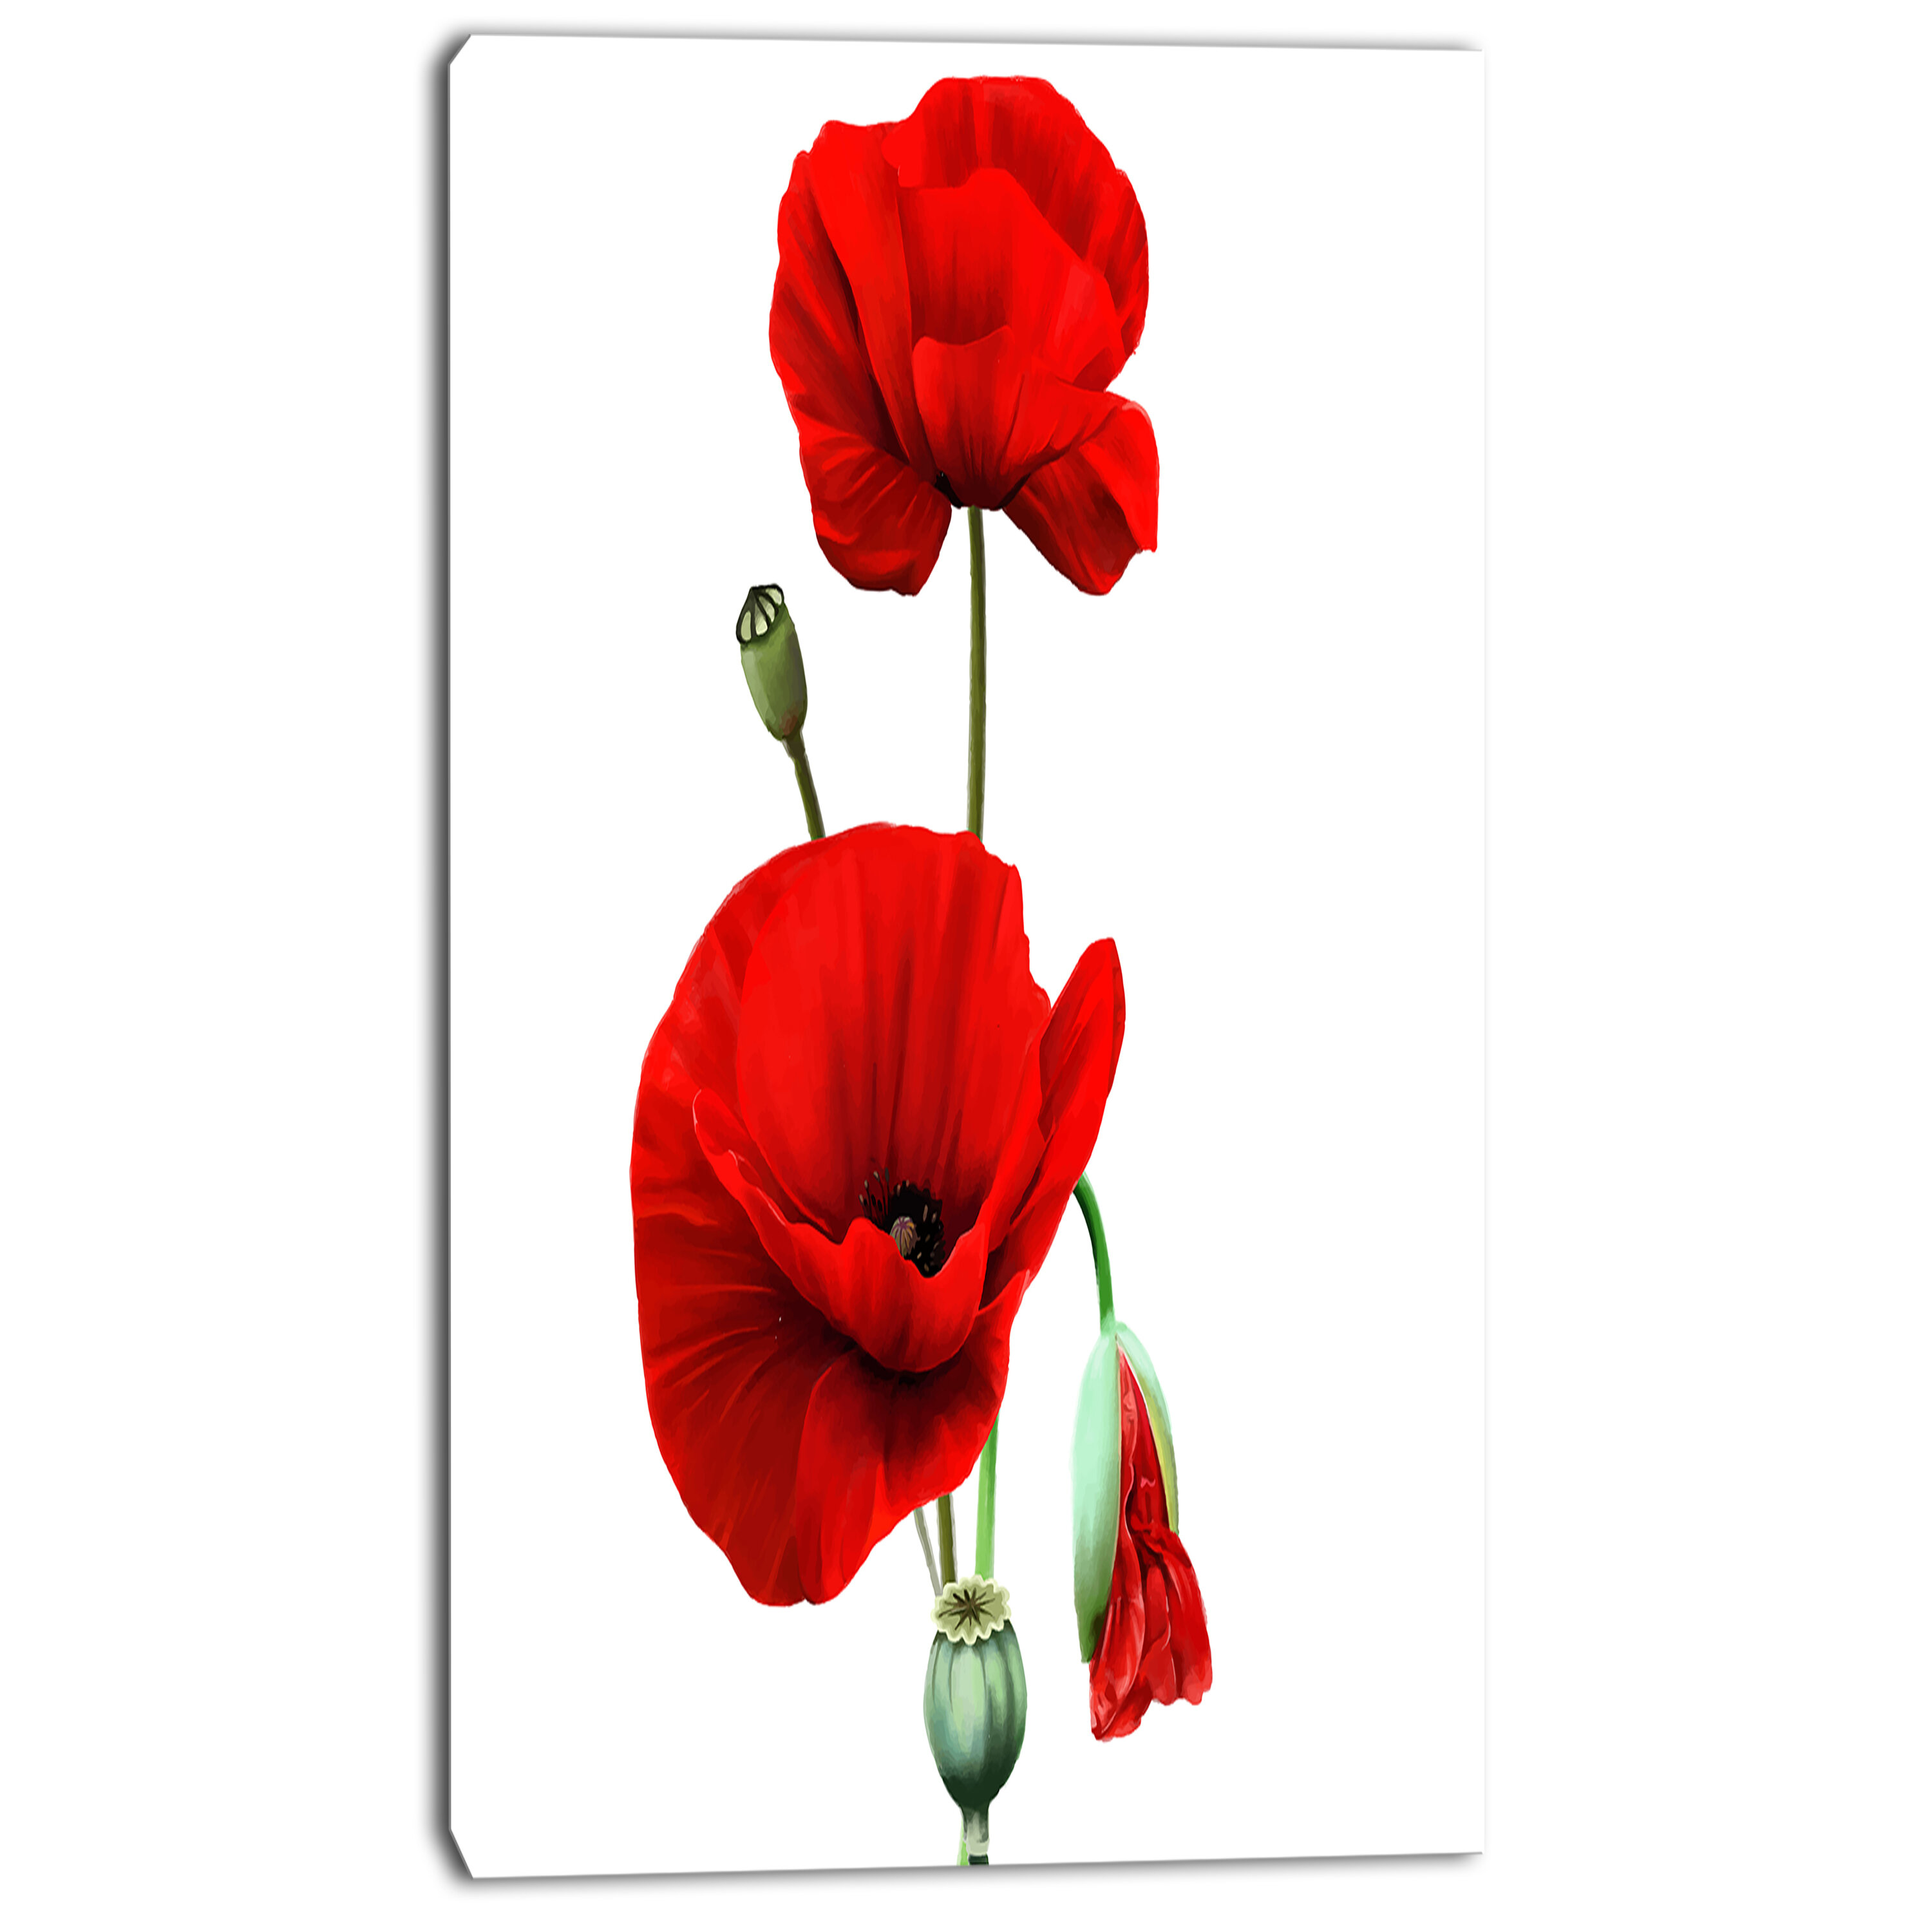 Designart Red Poppies On White Background Painting Print On